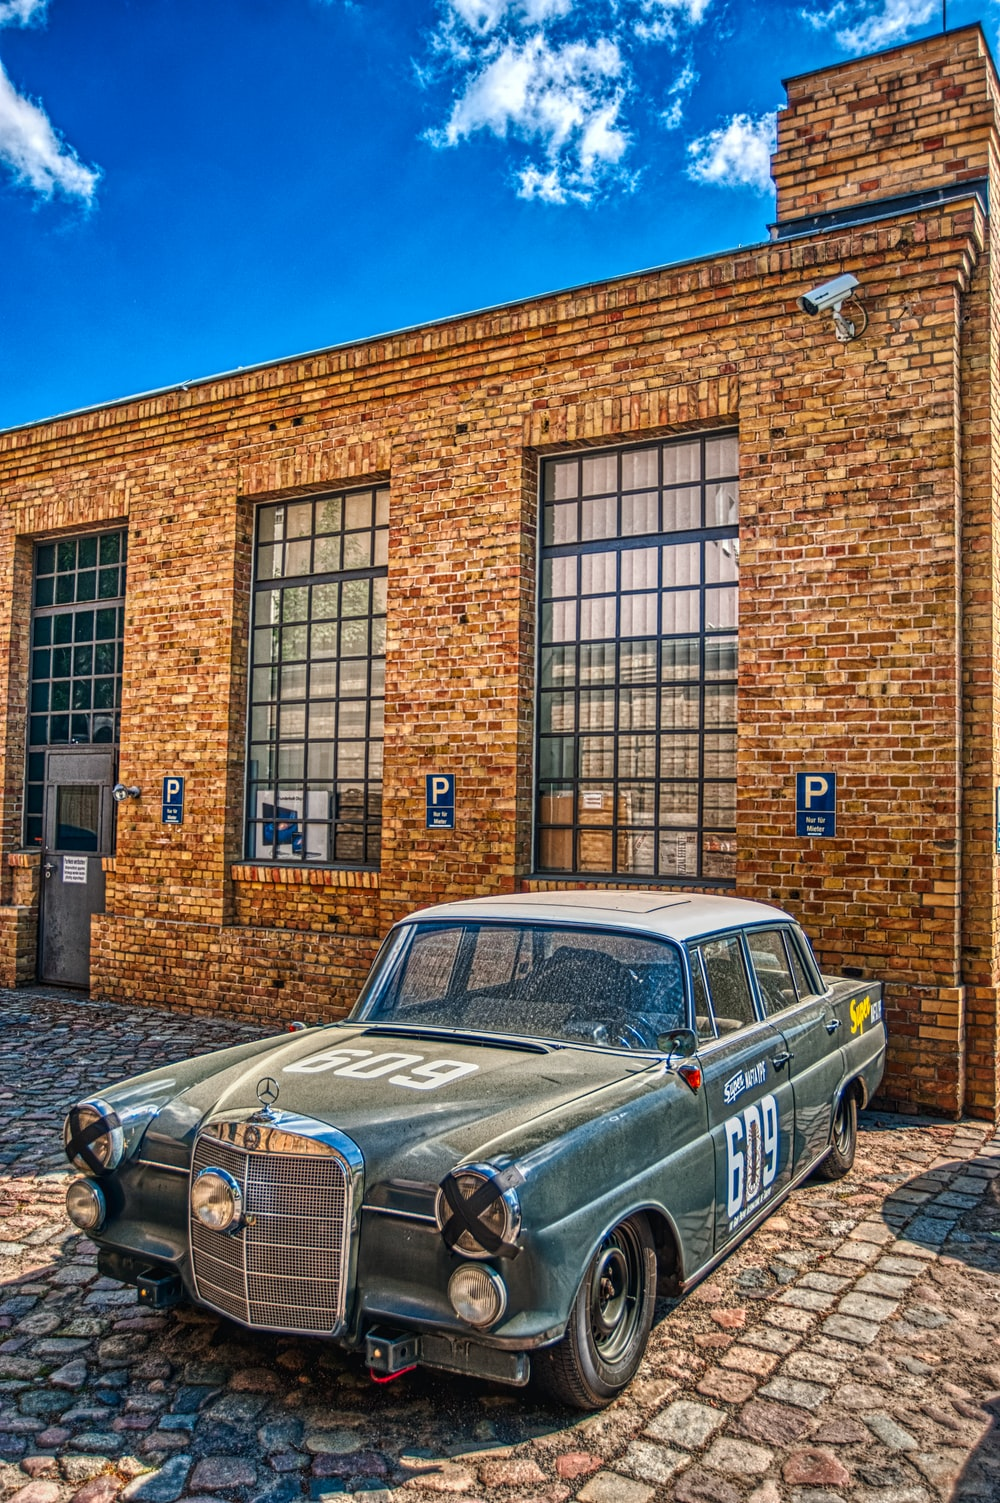 green classic car parked beside brown brick building